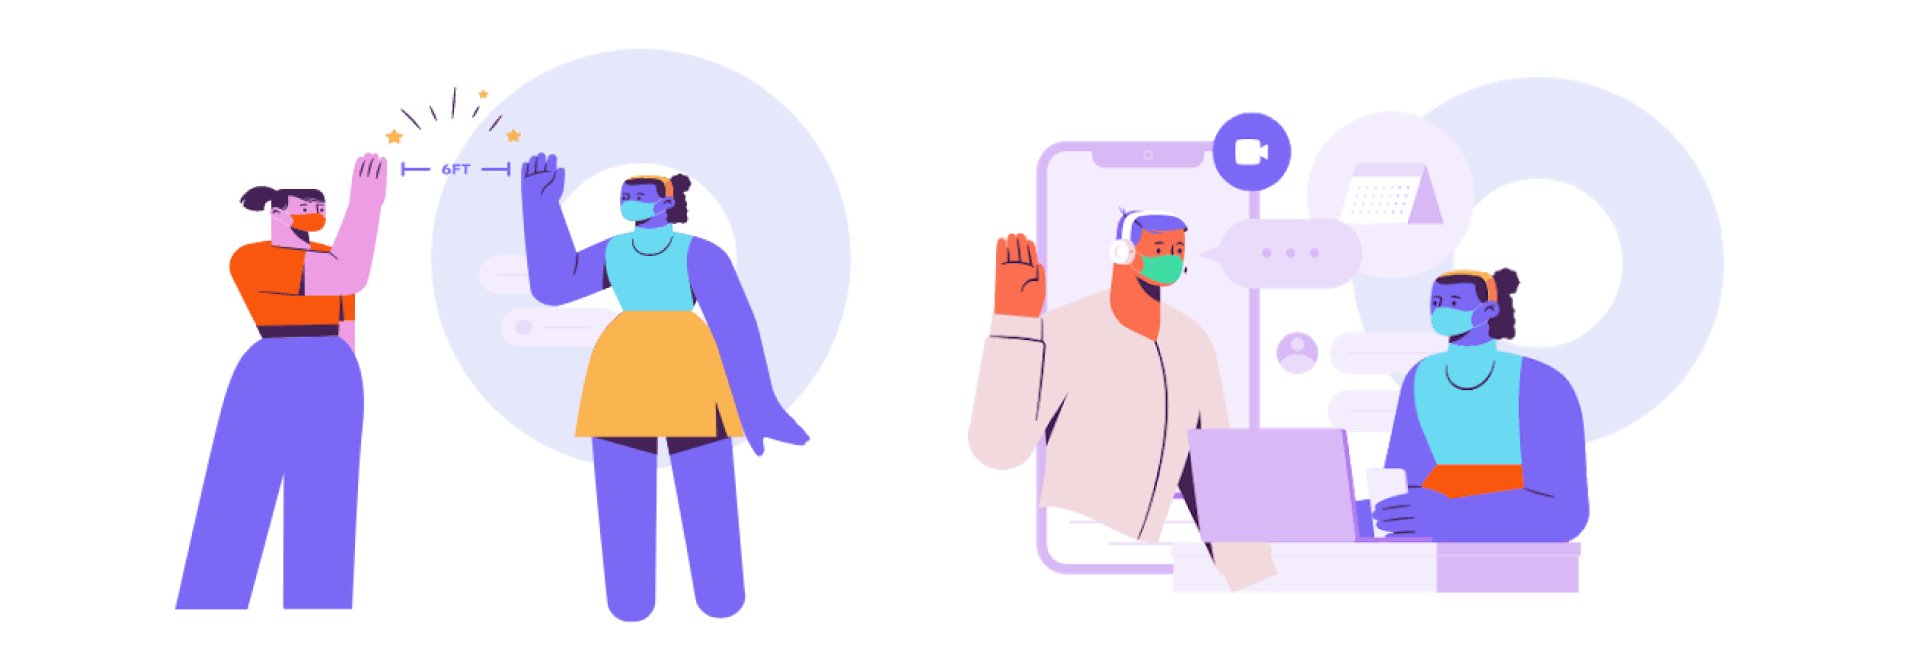 Two illustrations side by side. In the first, two female presenting people putting their hands up for a high-five 6ft away wearing masks. In the second, a orange male-presenting person is framed by a phone with a speech bubble and a female-presenting person sitting at a laptop